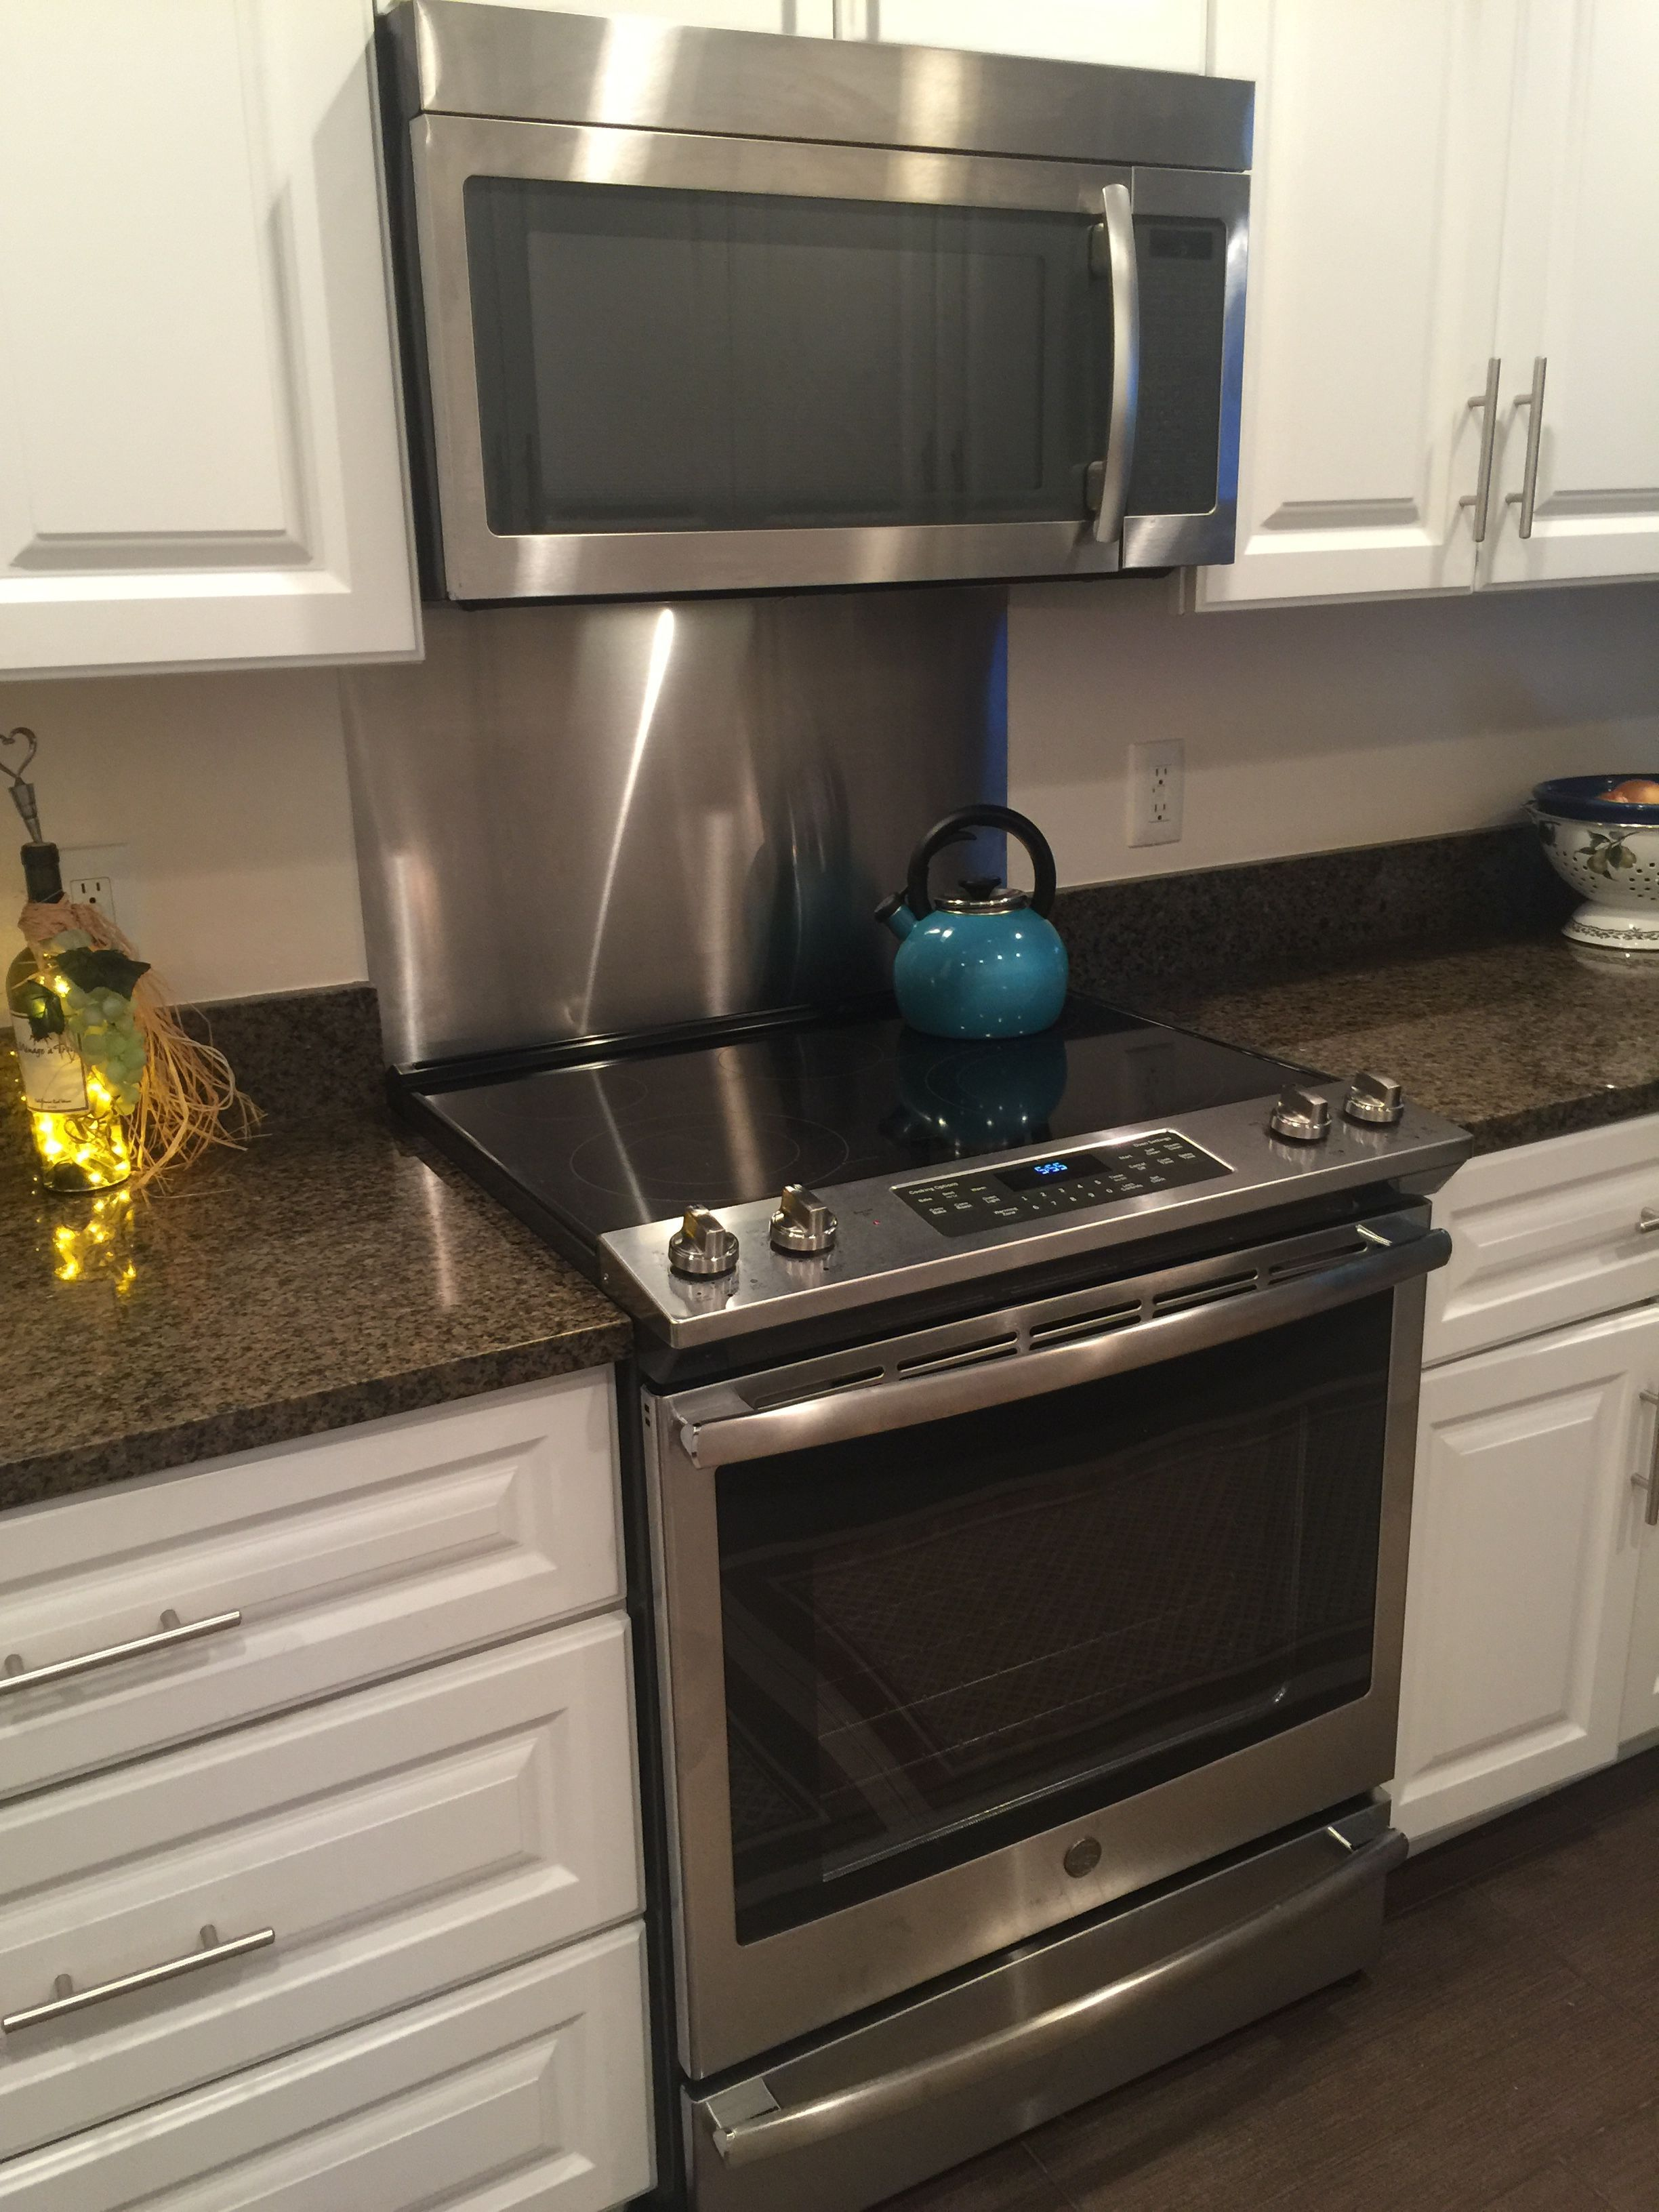 Stainless Steel Behind Slide In Range This Is Clean Best Solution F Stainless Kitchen Backsplash Appliances